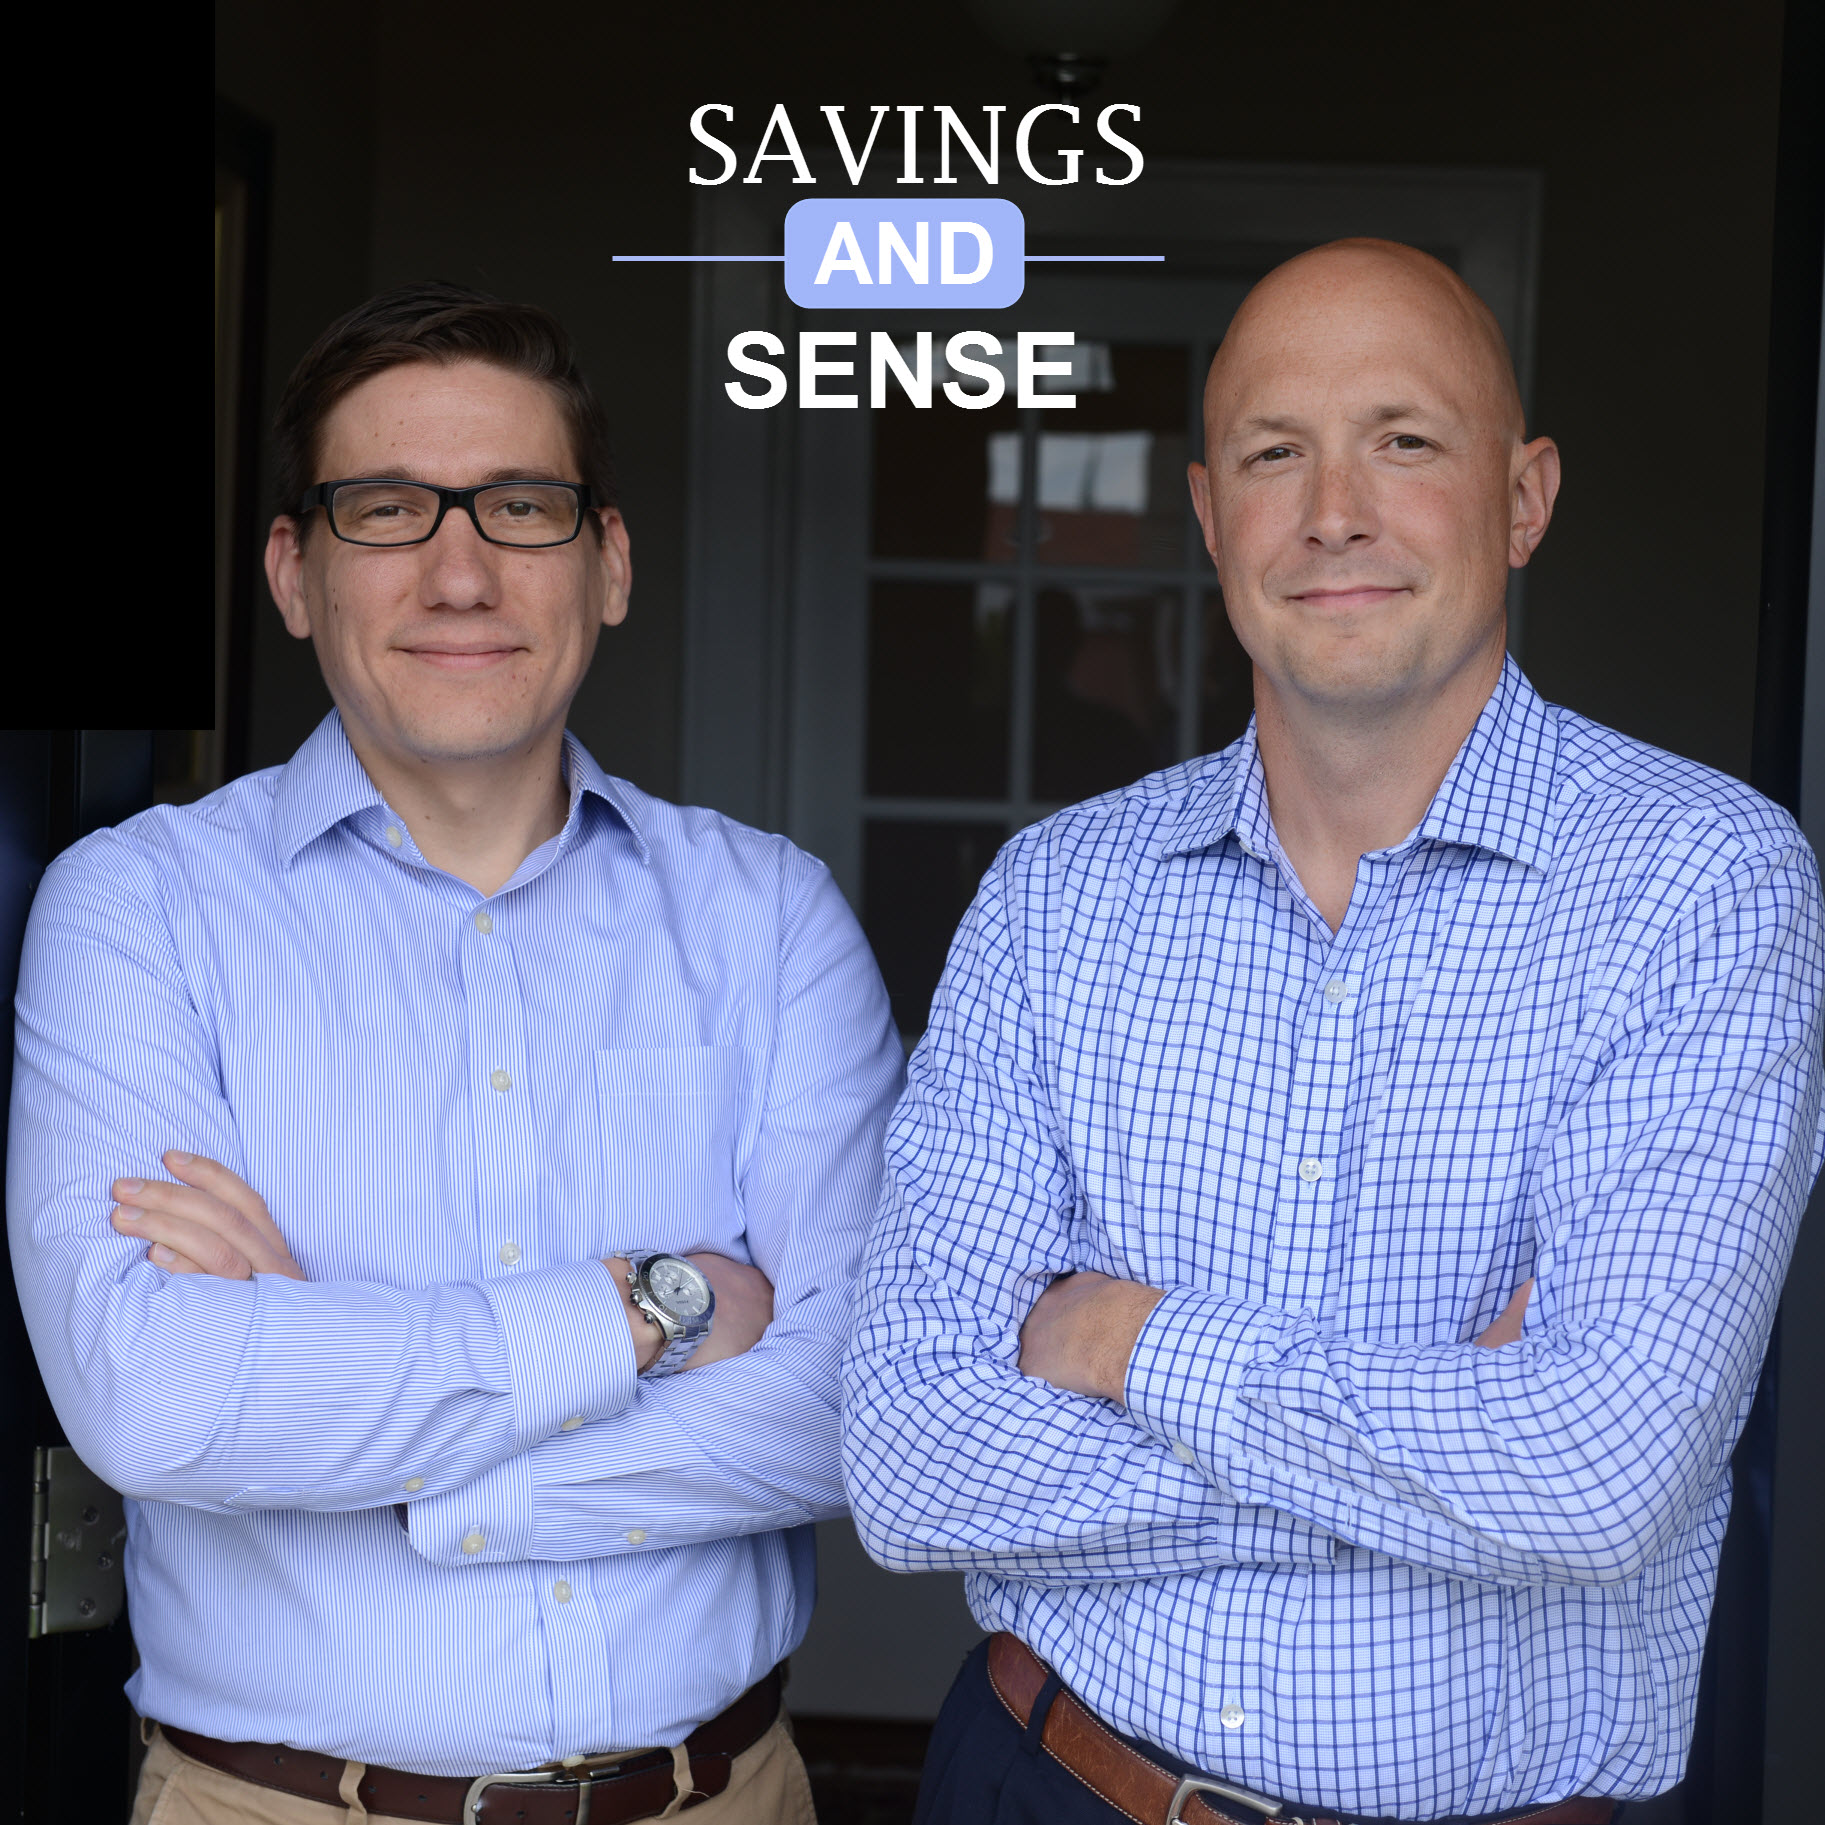 Savings and Sense